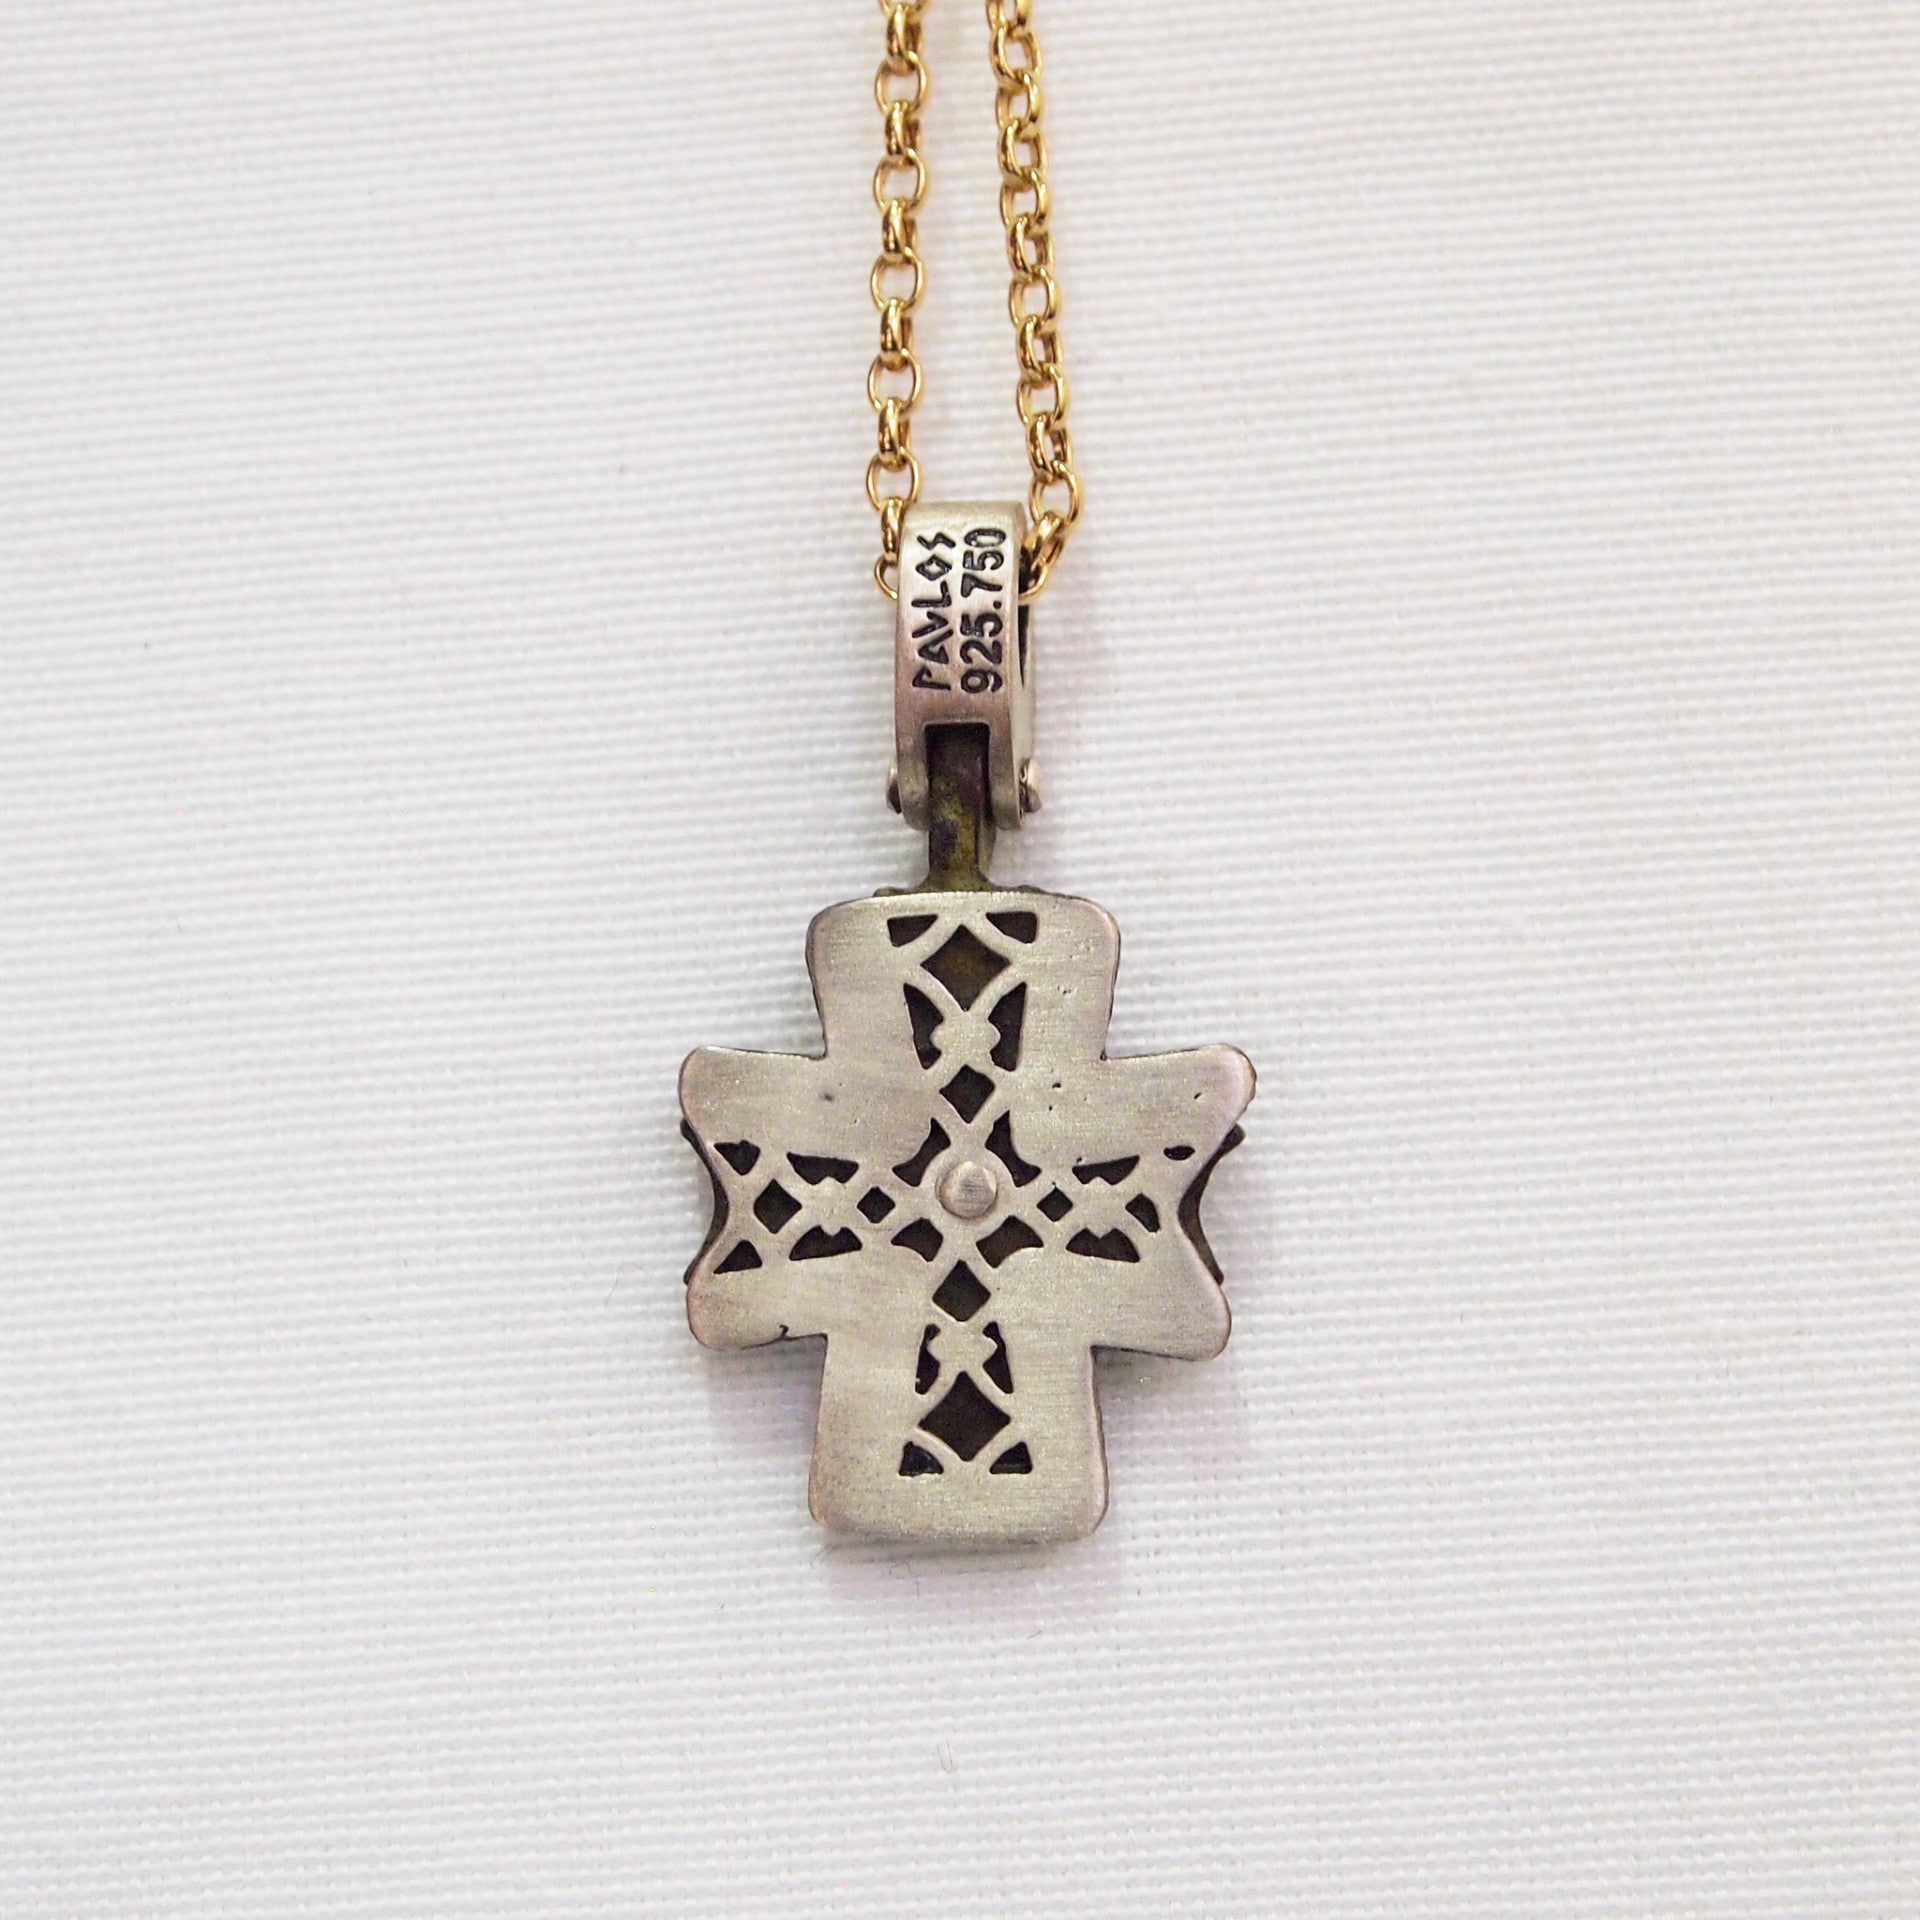 Original Byzantine period bronze cross pendant encrusted in sterling silver and yellow gold